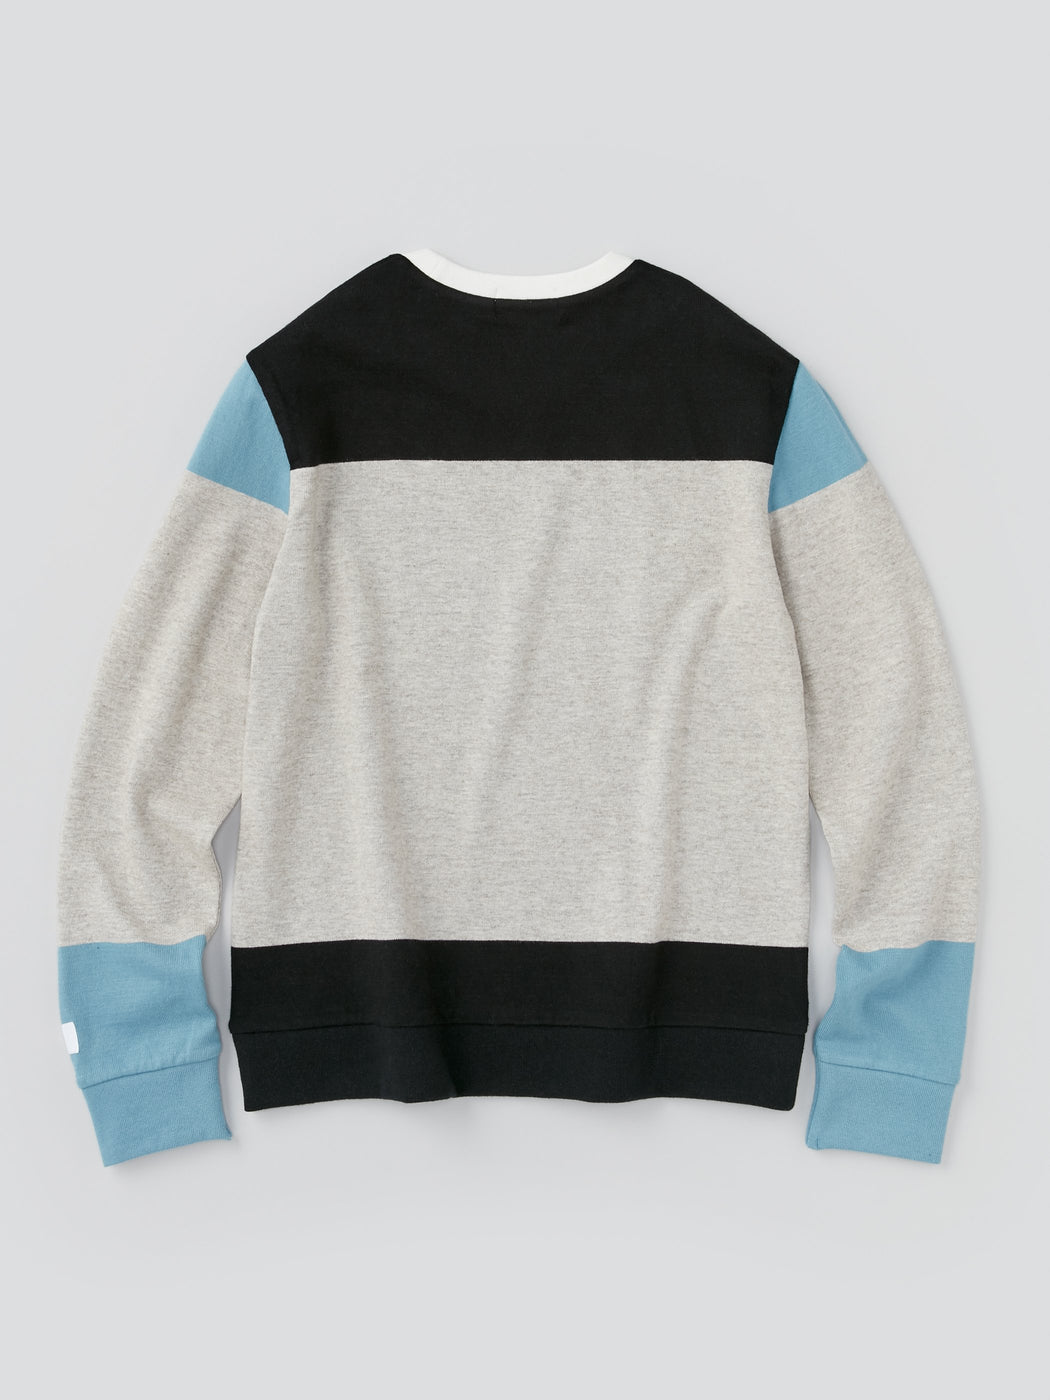 ALOYE G.F.G.S. Men's Cotton Knitted Sweater Black and Heather Gray Color Block